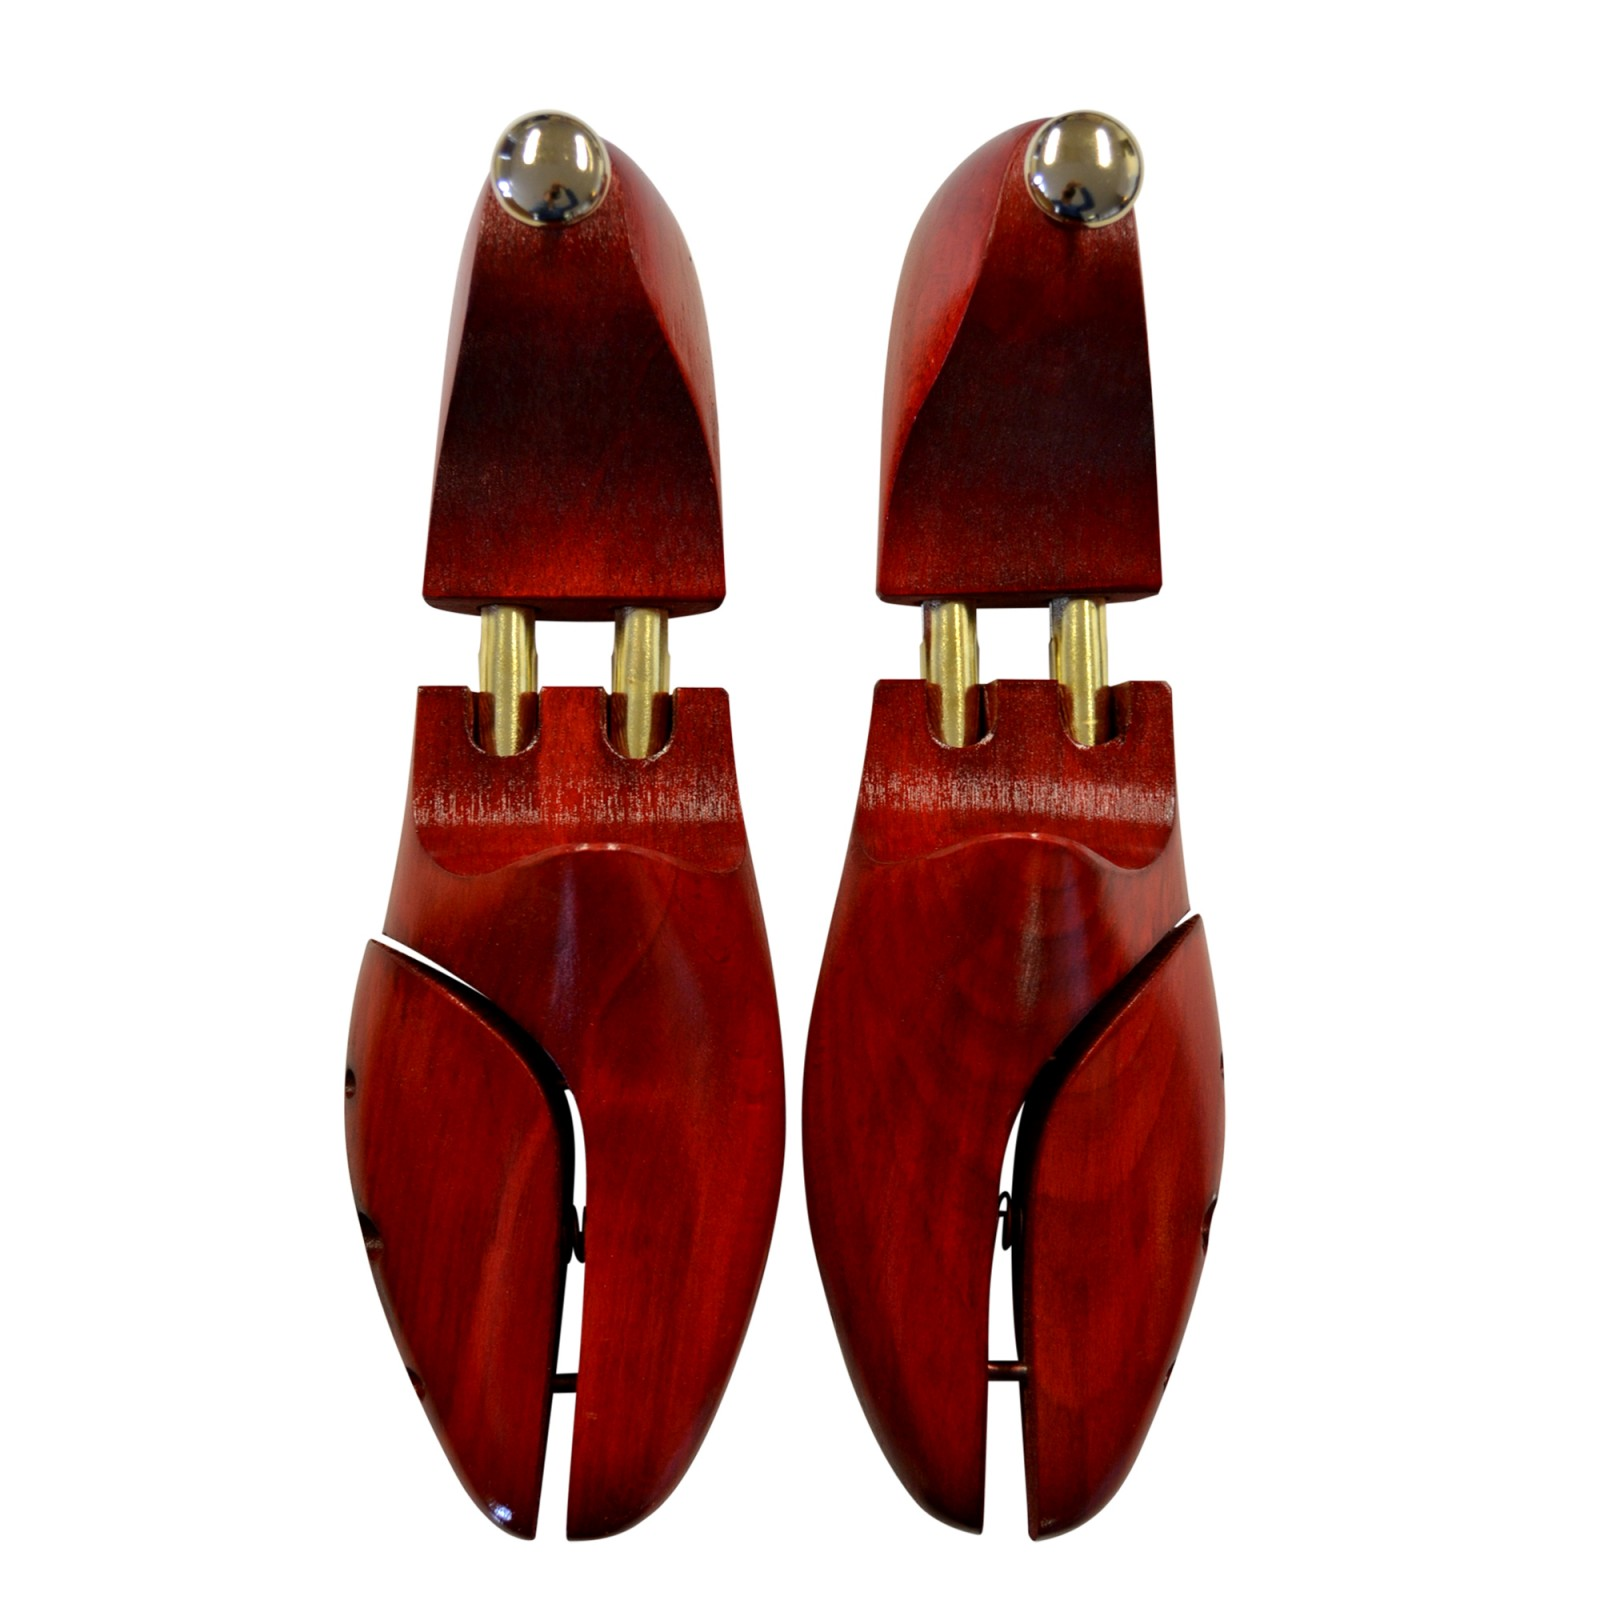 Shoestring Deluxe Red Beechwood Shoe Trees